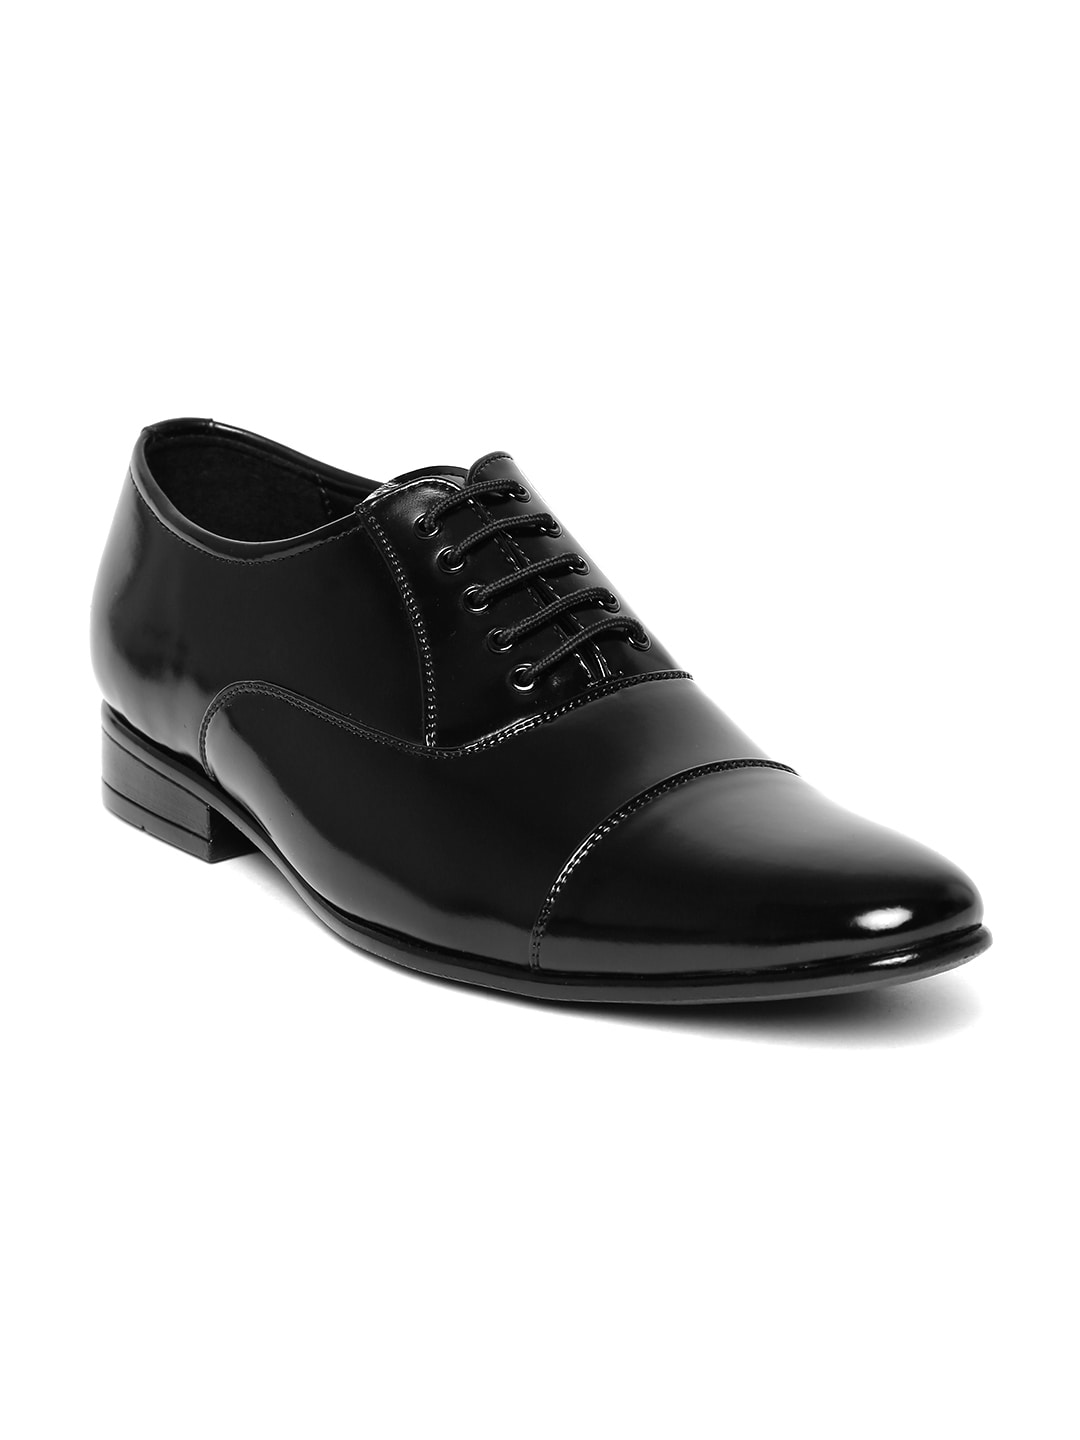 3e57a2b22 Formal Shoes For Men - Buy Men s Formal Shoes Online